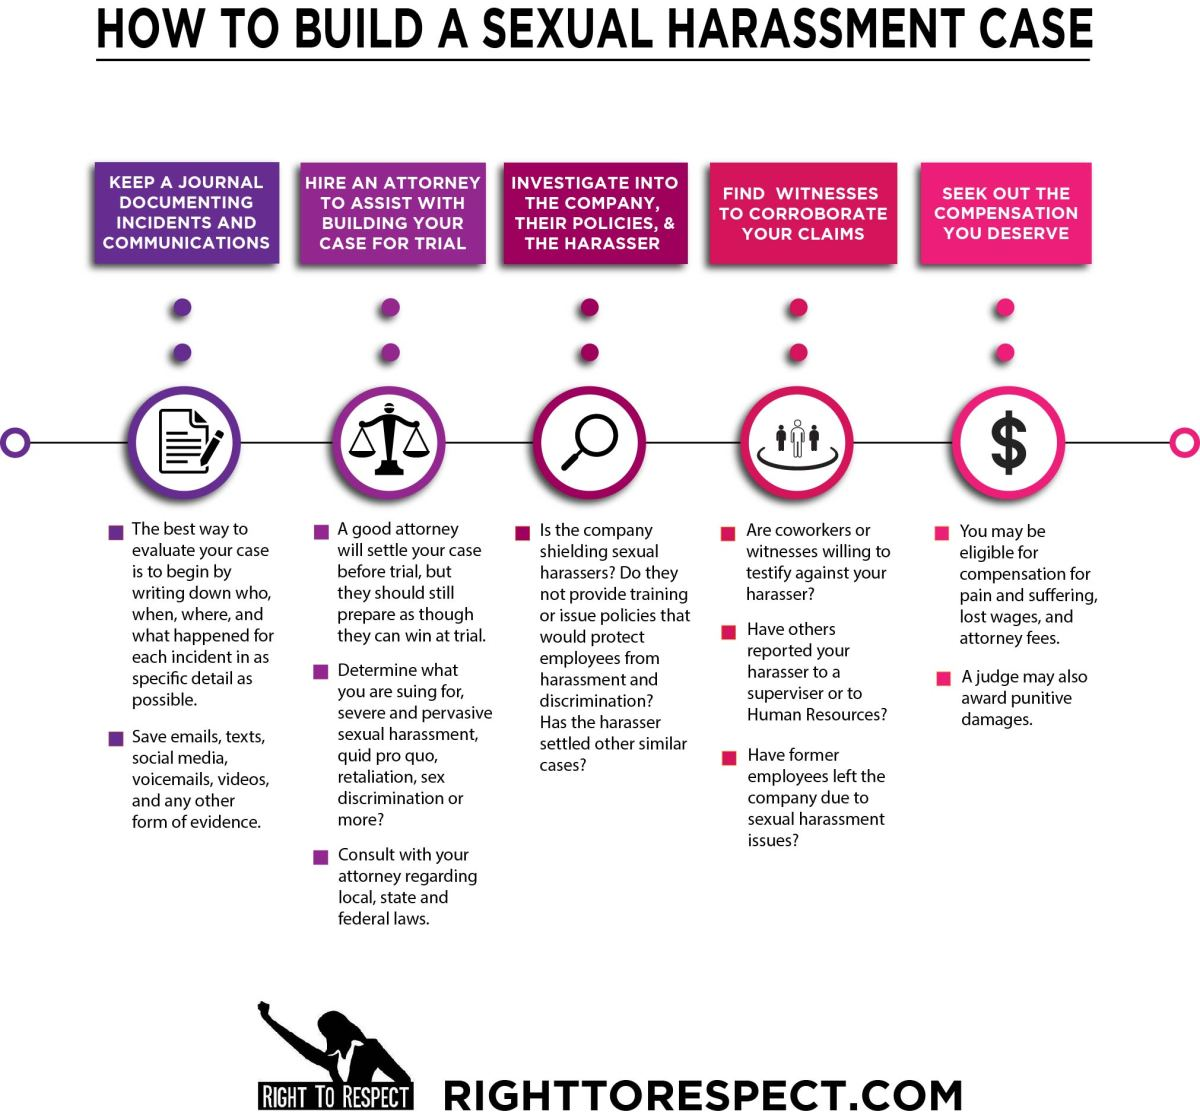 How To Build A Sexual Harassment Case - Right To Respect